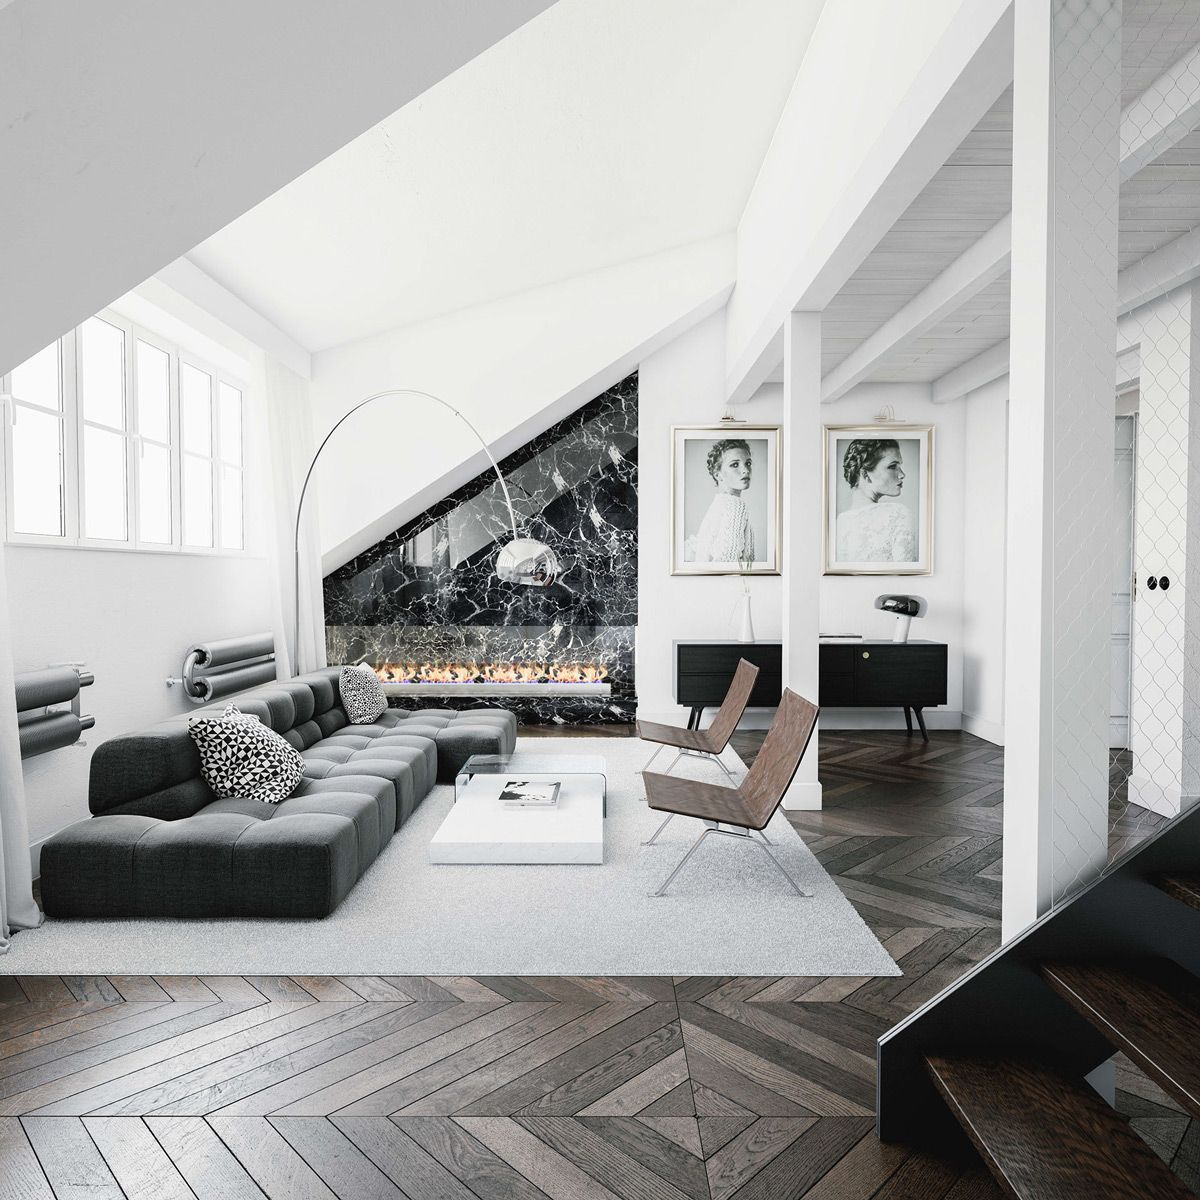 Homedesigning: (via 30 Black & White Living Rooms